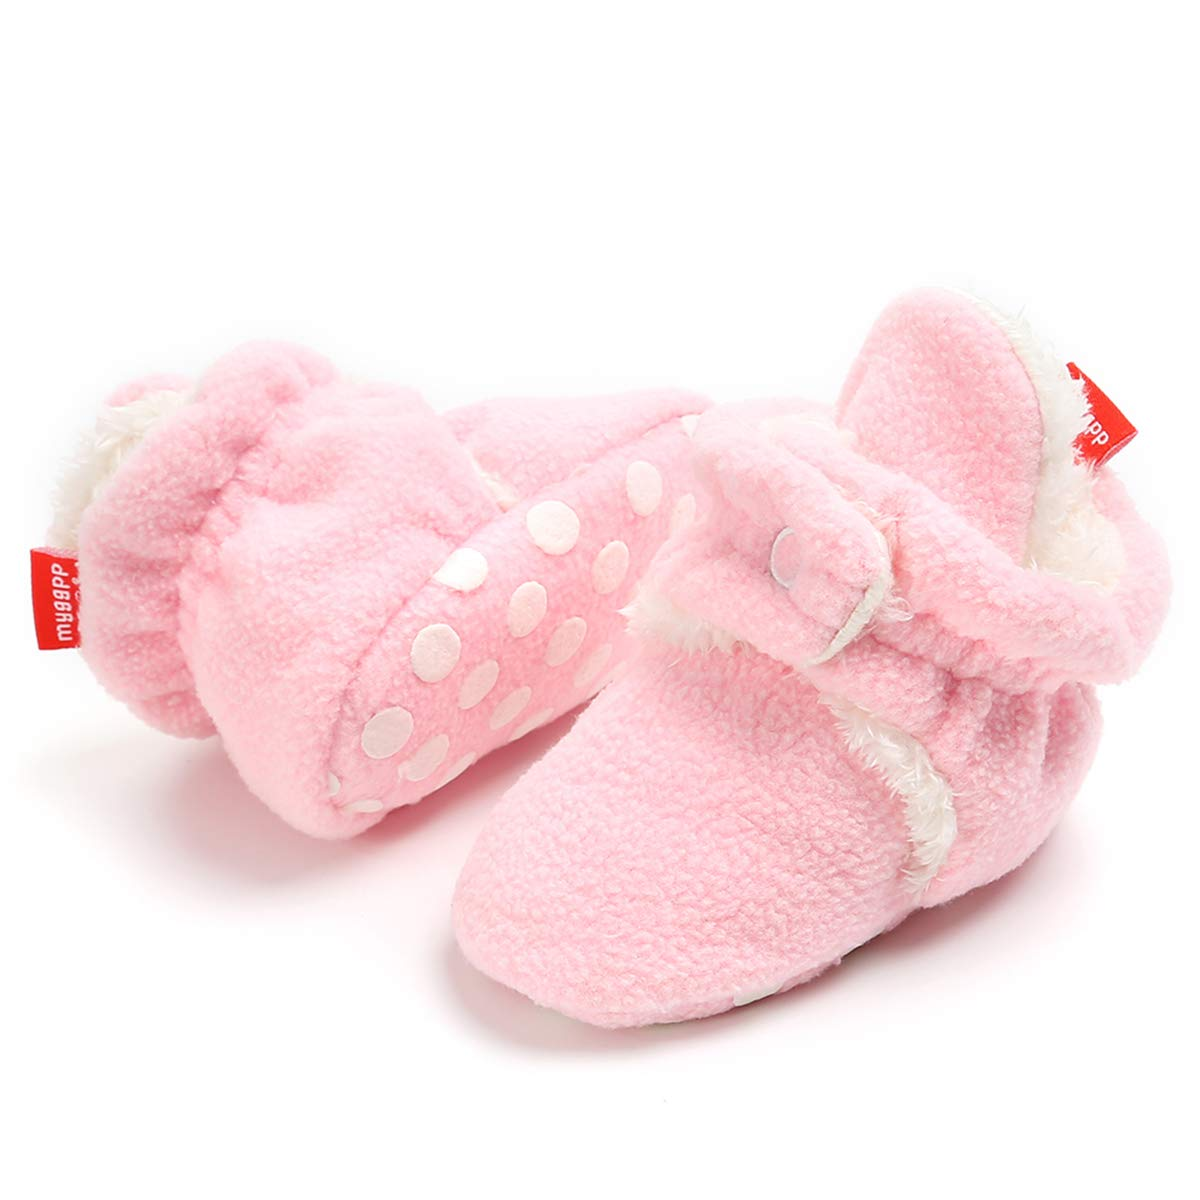 9cade15299aea LIVEBOX Newborn Baby Booties, Cotton Warm Winter Infant Prewalker Toddler  Snow Boots Crib Shoes for...